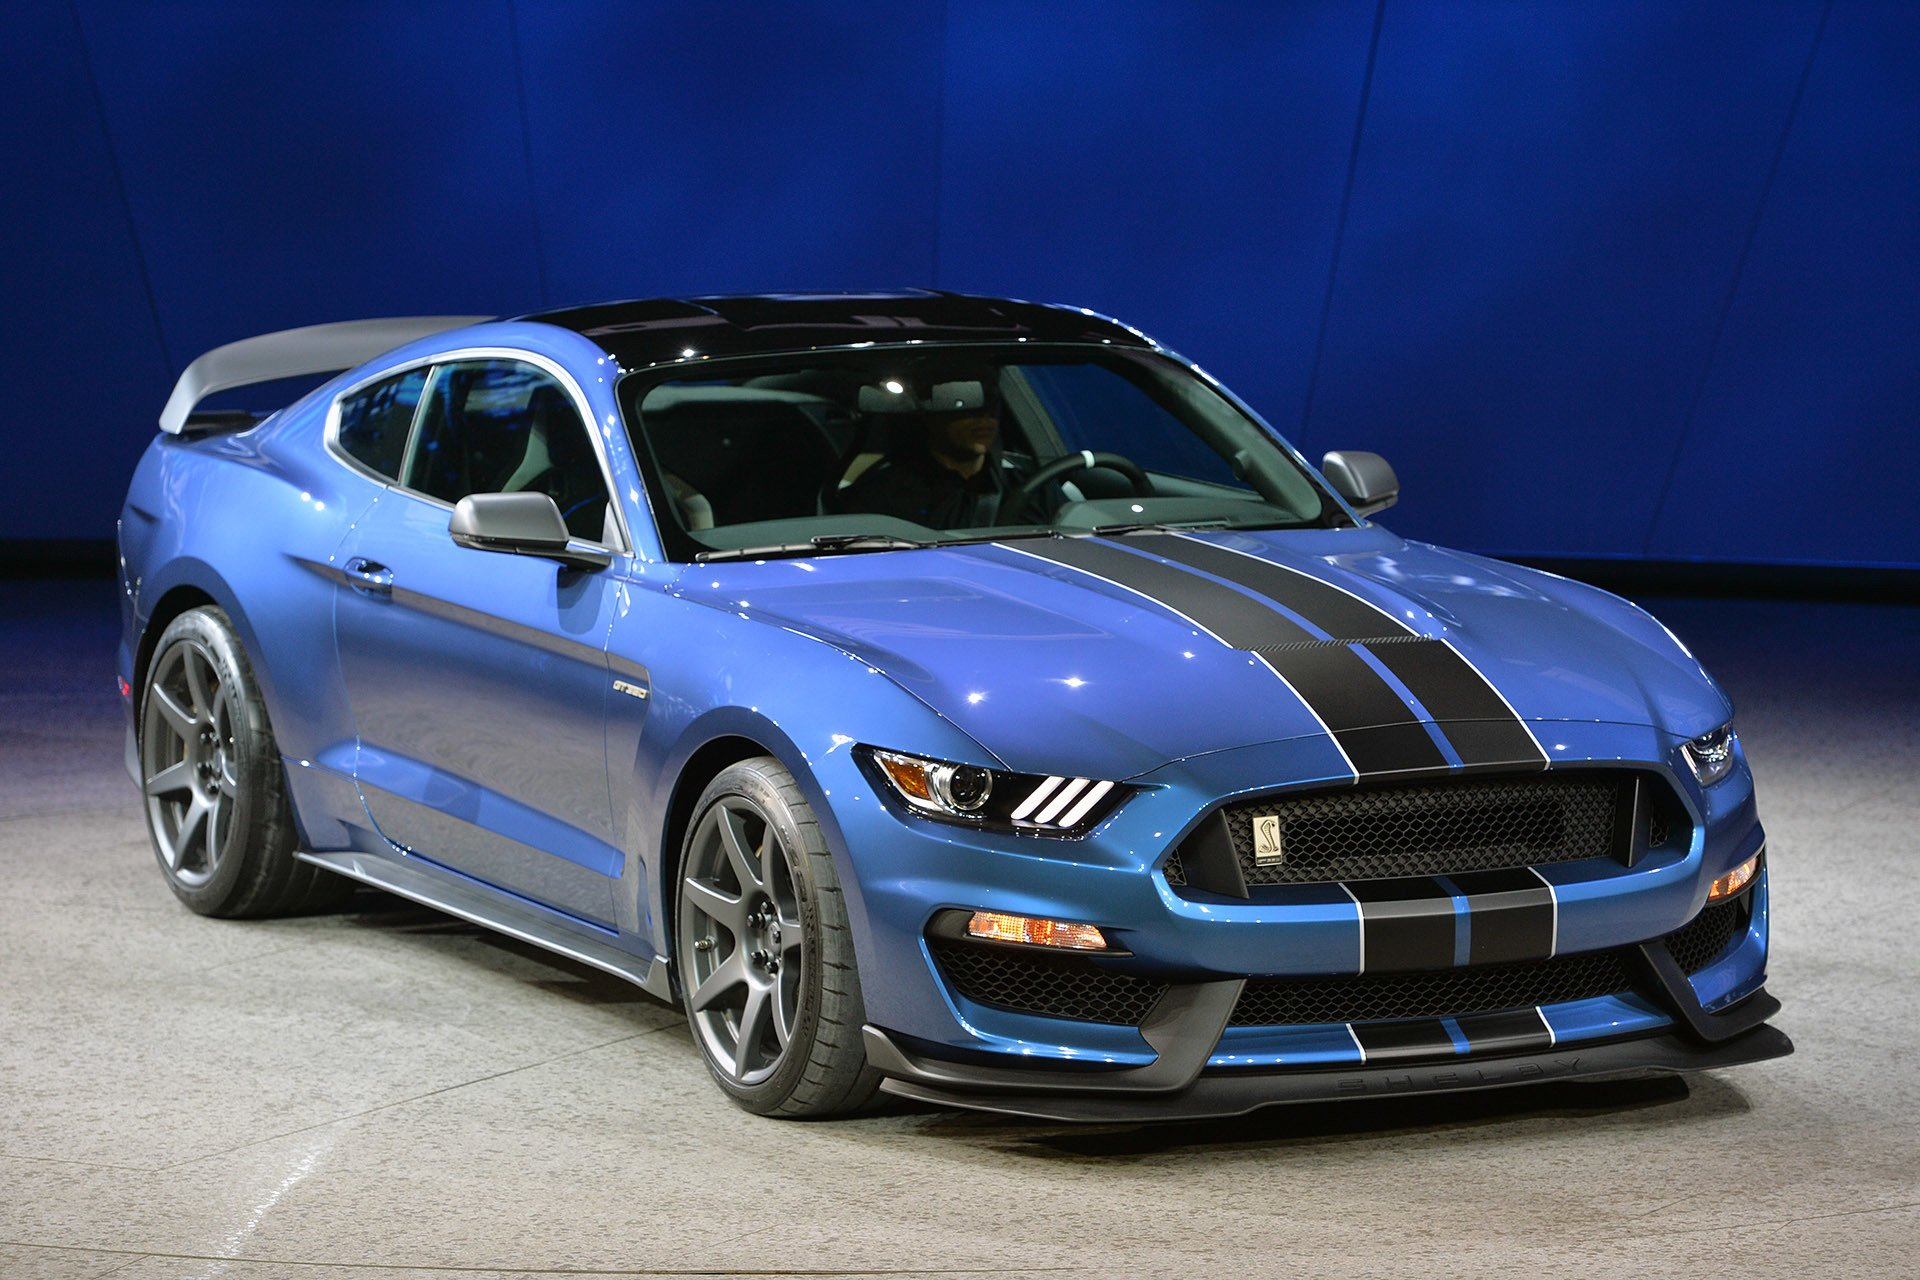 Ford Mustang Shelby Gt350r Ford Mustang Shelby Gt350r 2015 Dark Cars Wallpapers